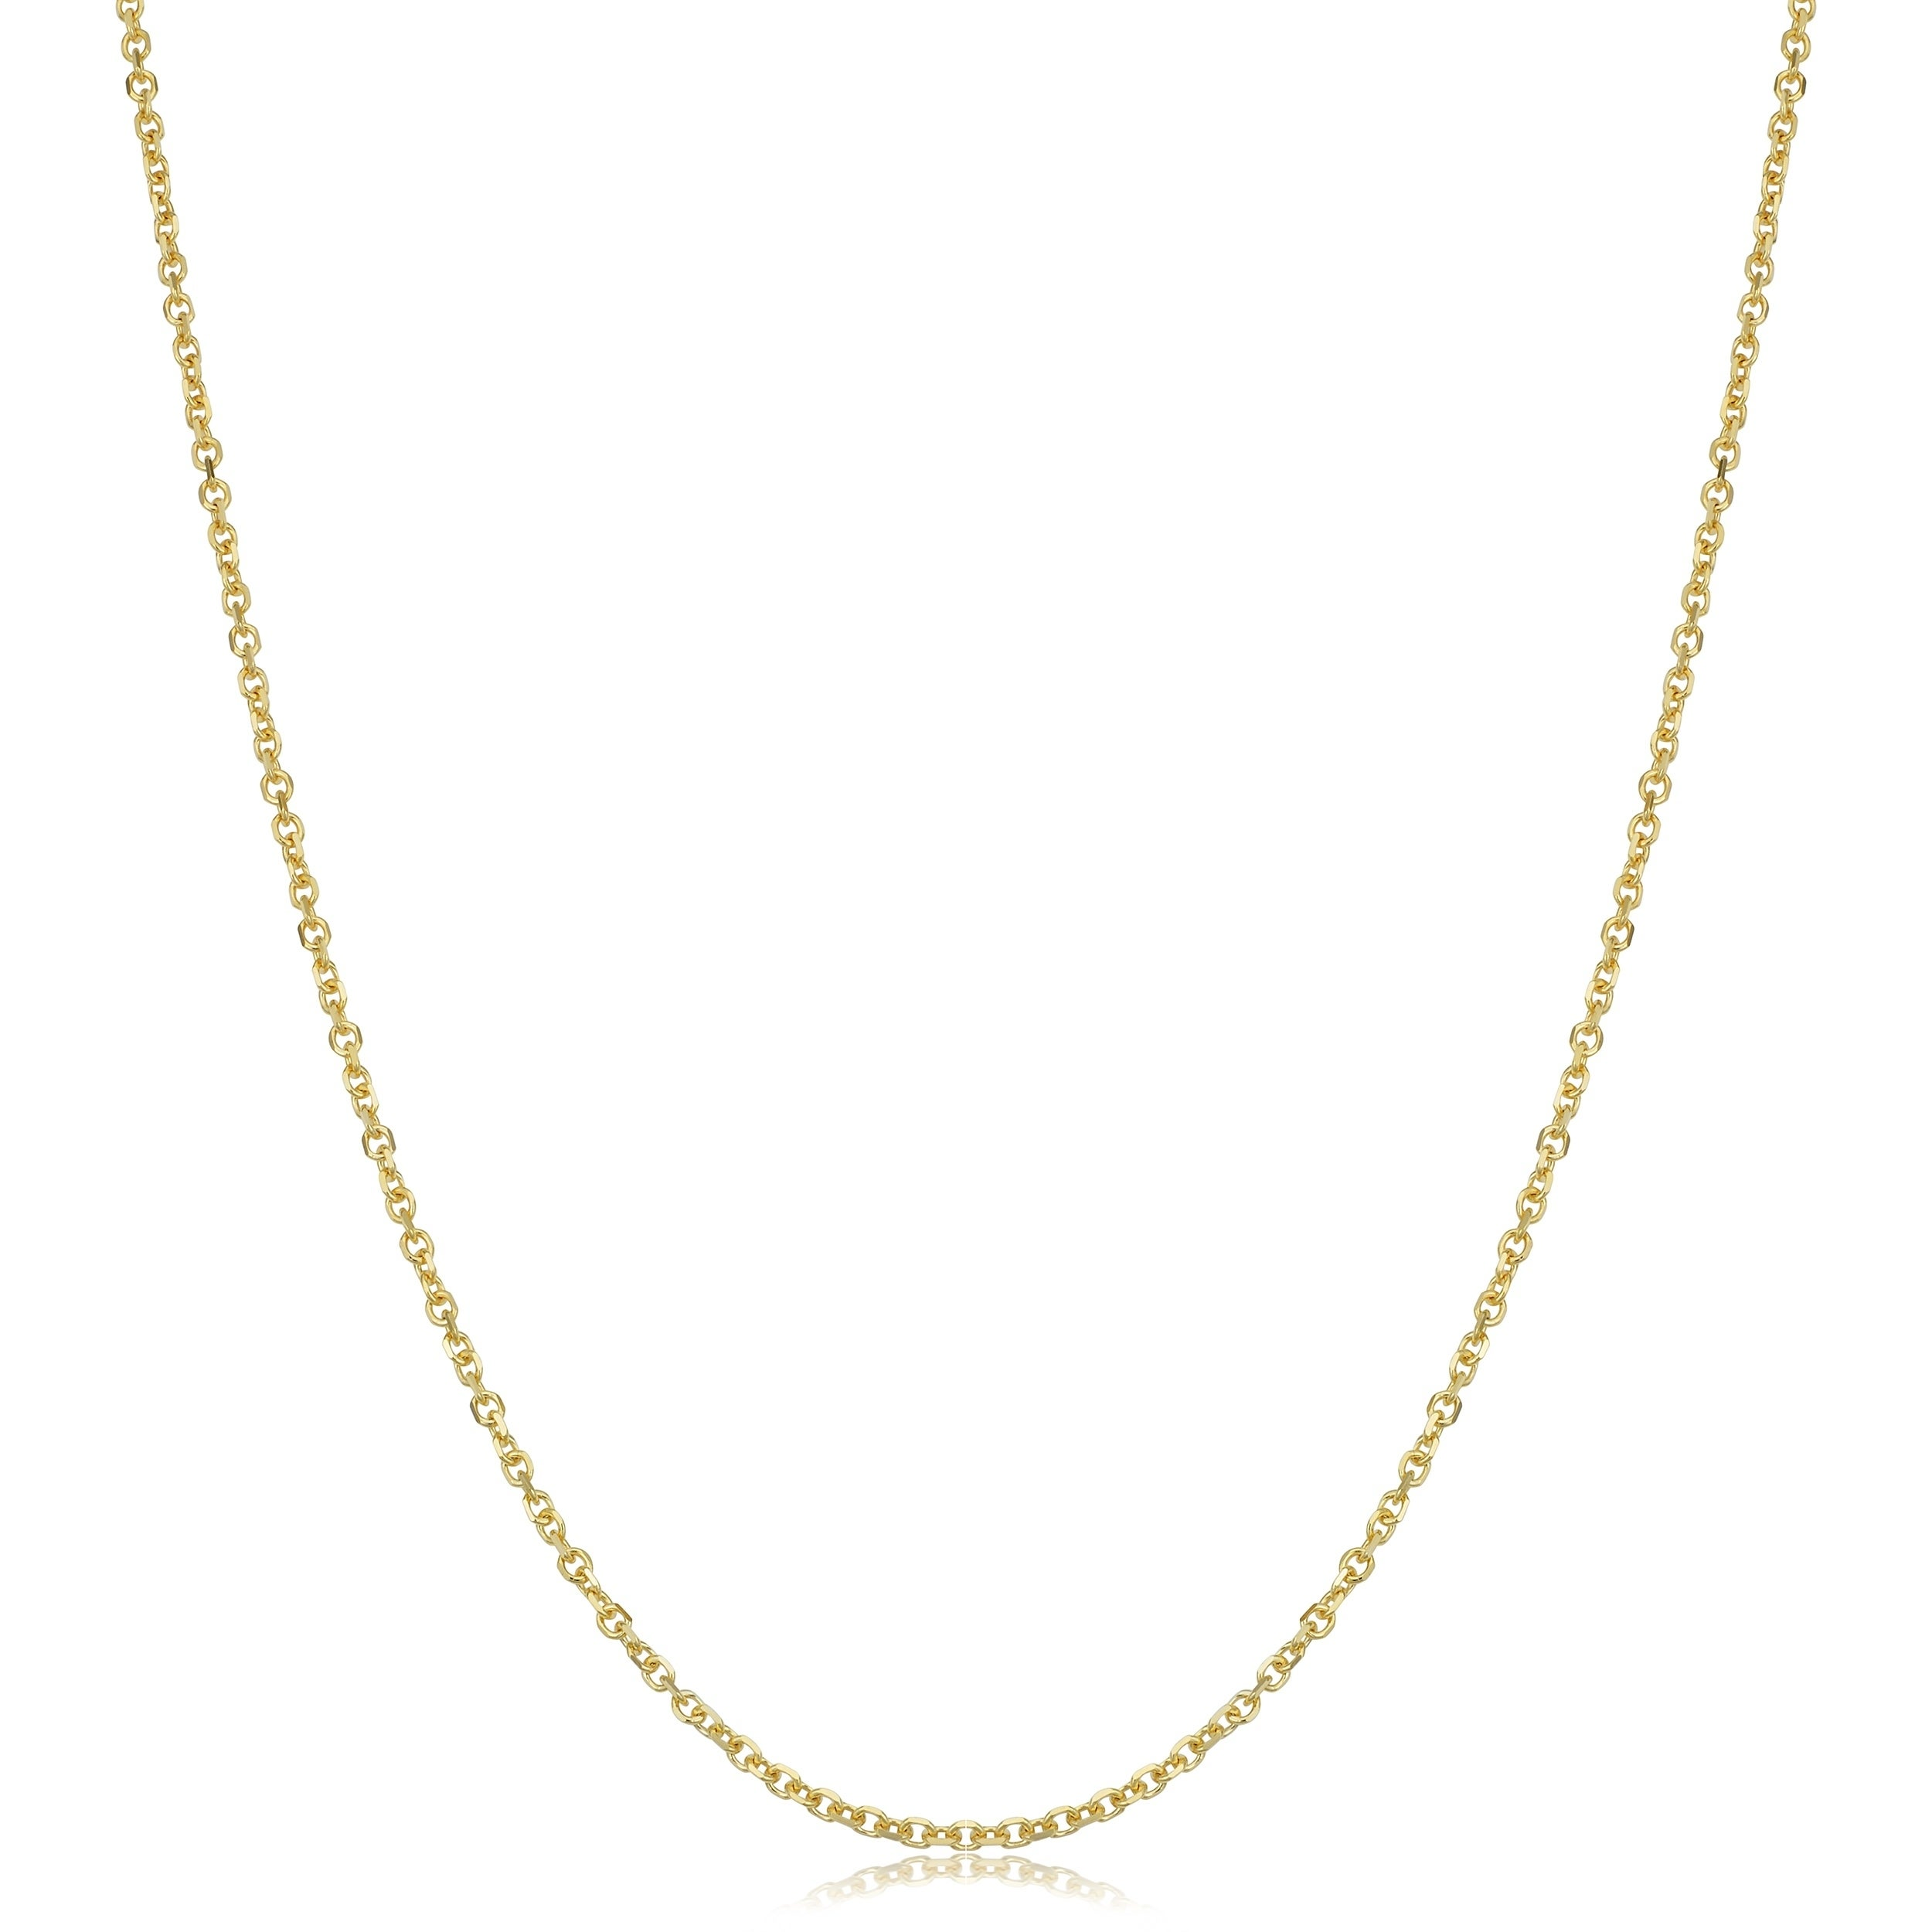 IcedTime 14K Yellow Gold 1.9mm wide Diamond Cut Forsantina Chain with Lobster Clasp